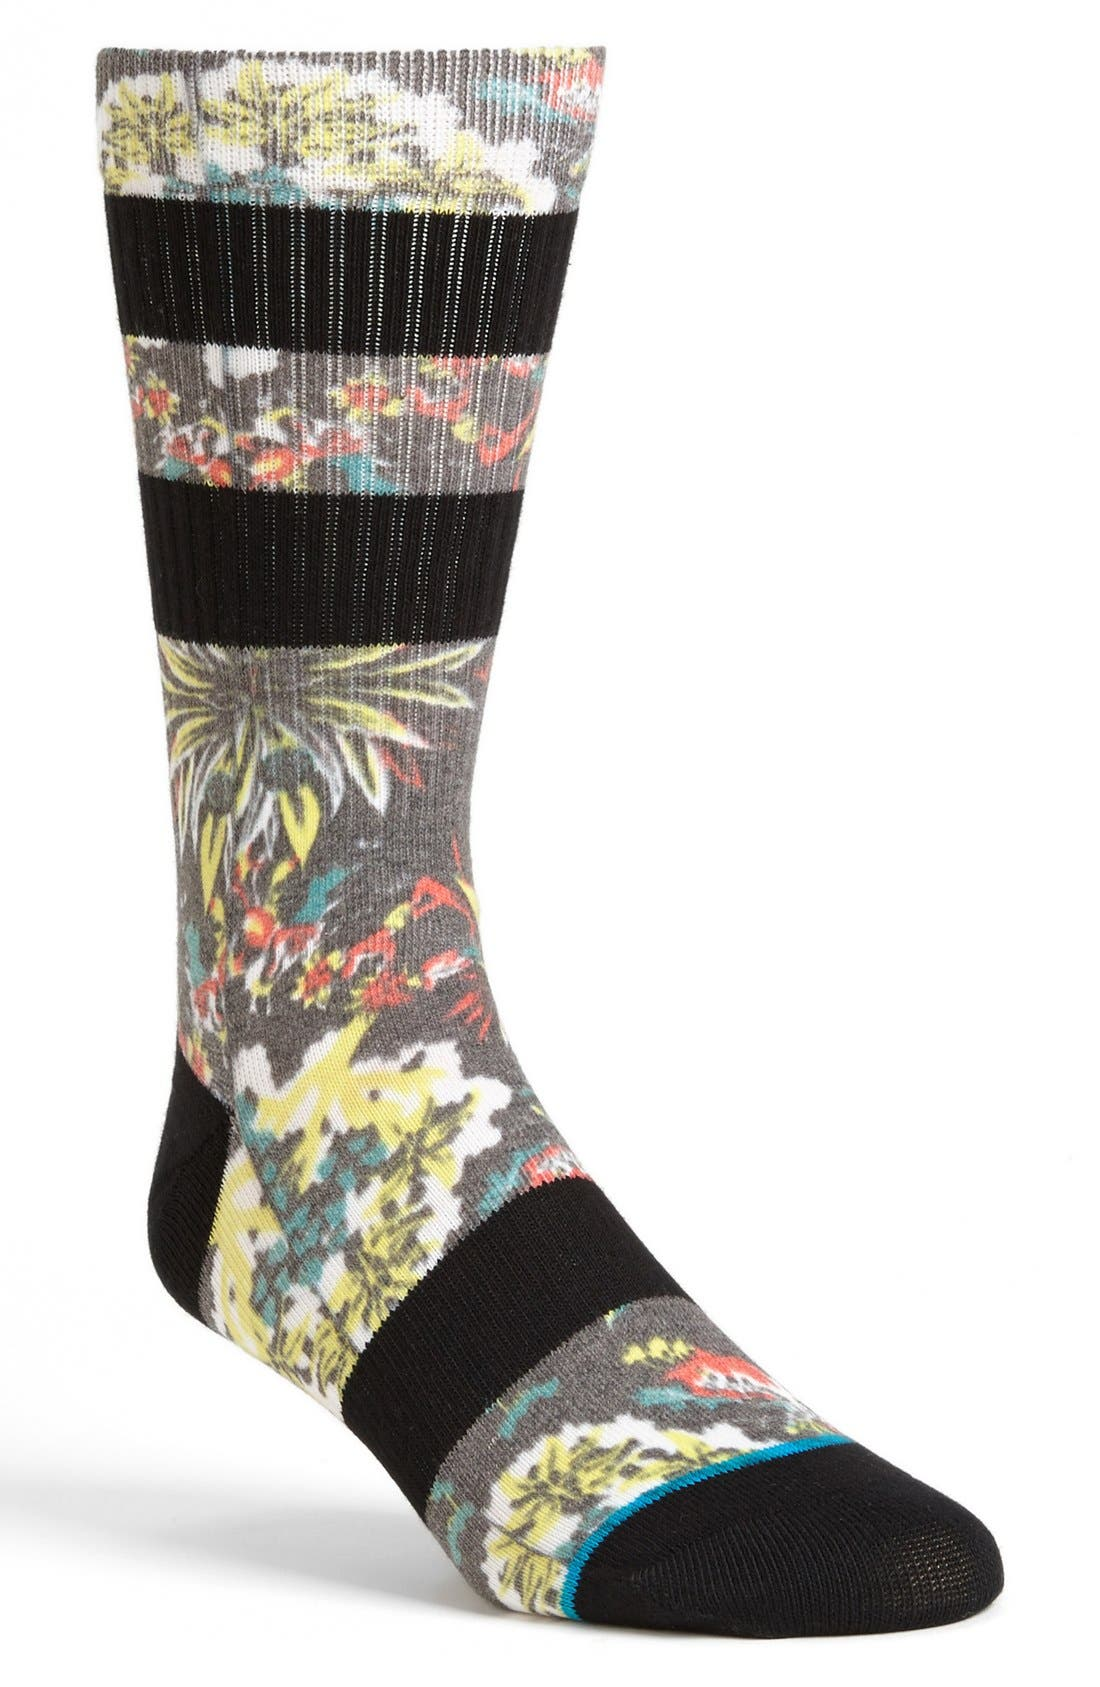 Alternate Image 1 Selected - Stance 'Kamea' Socks